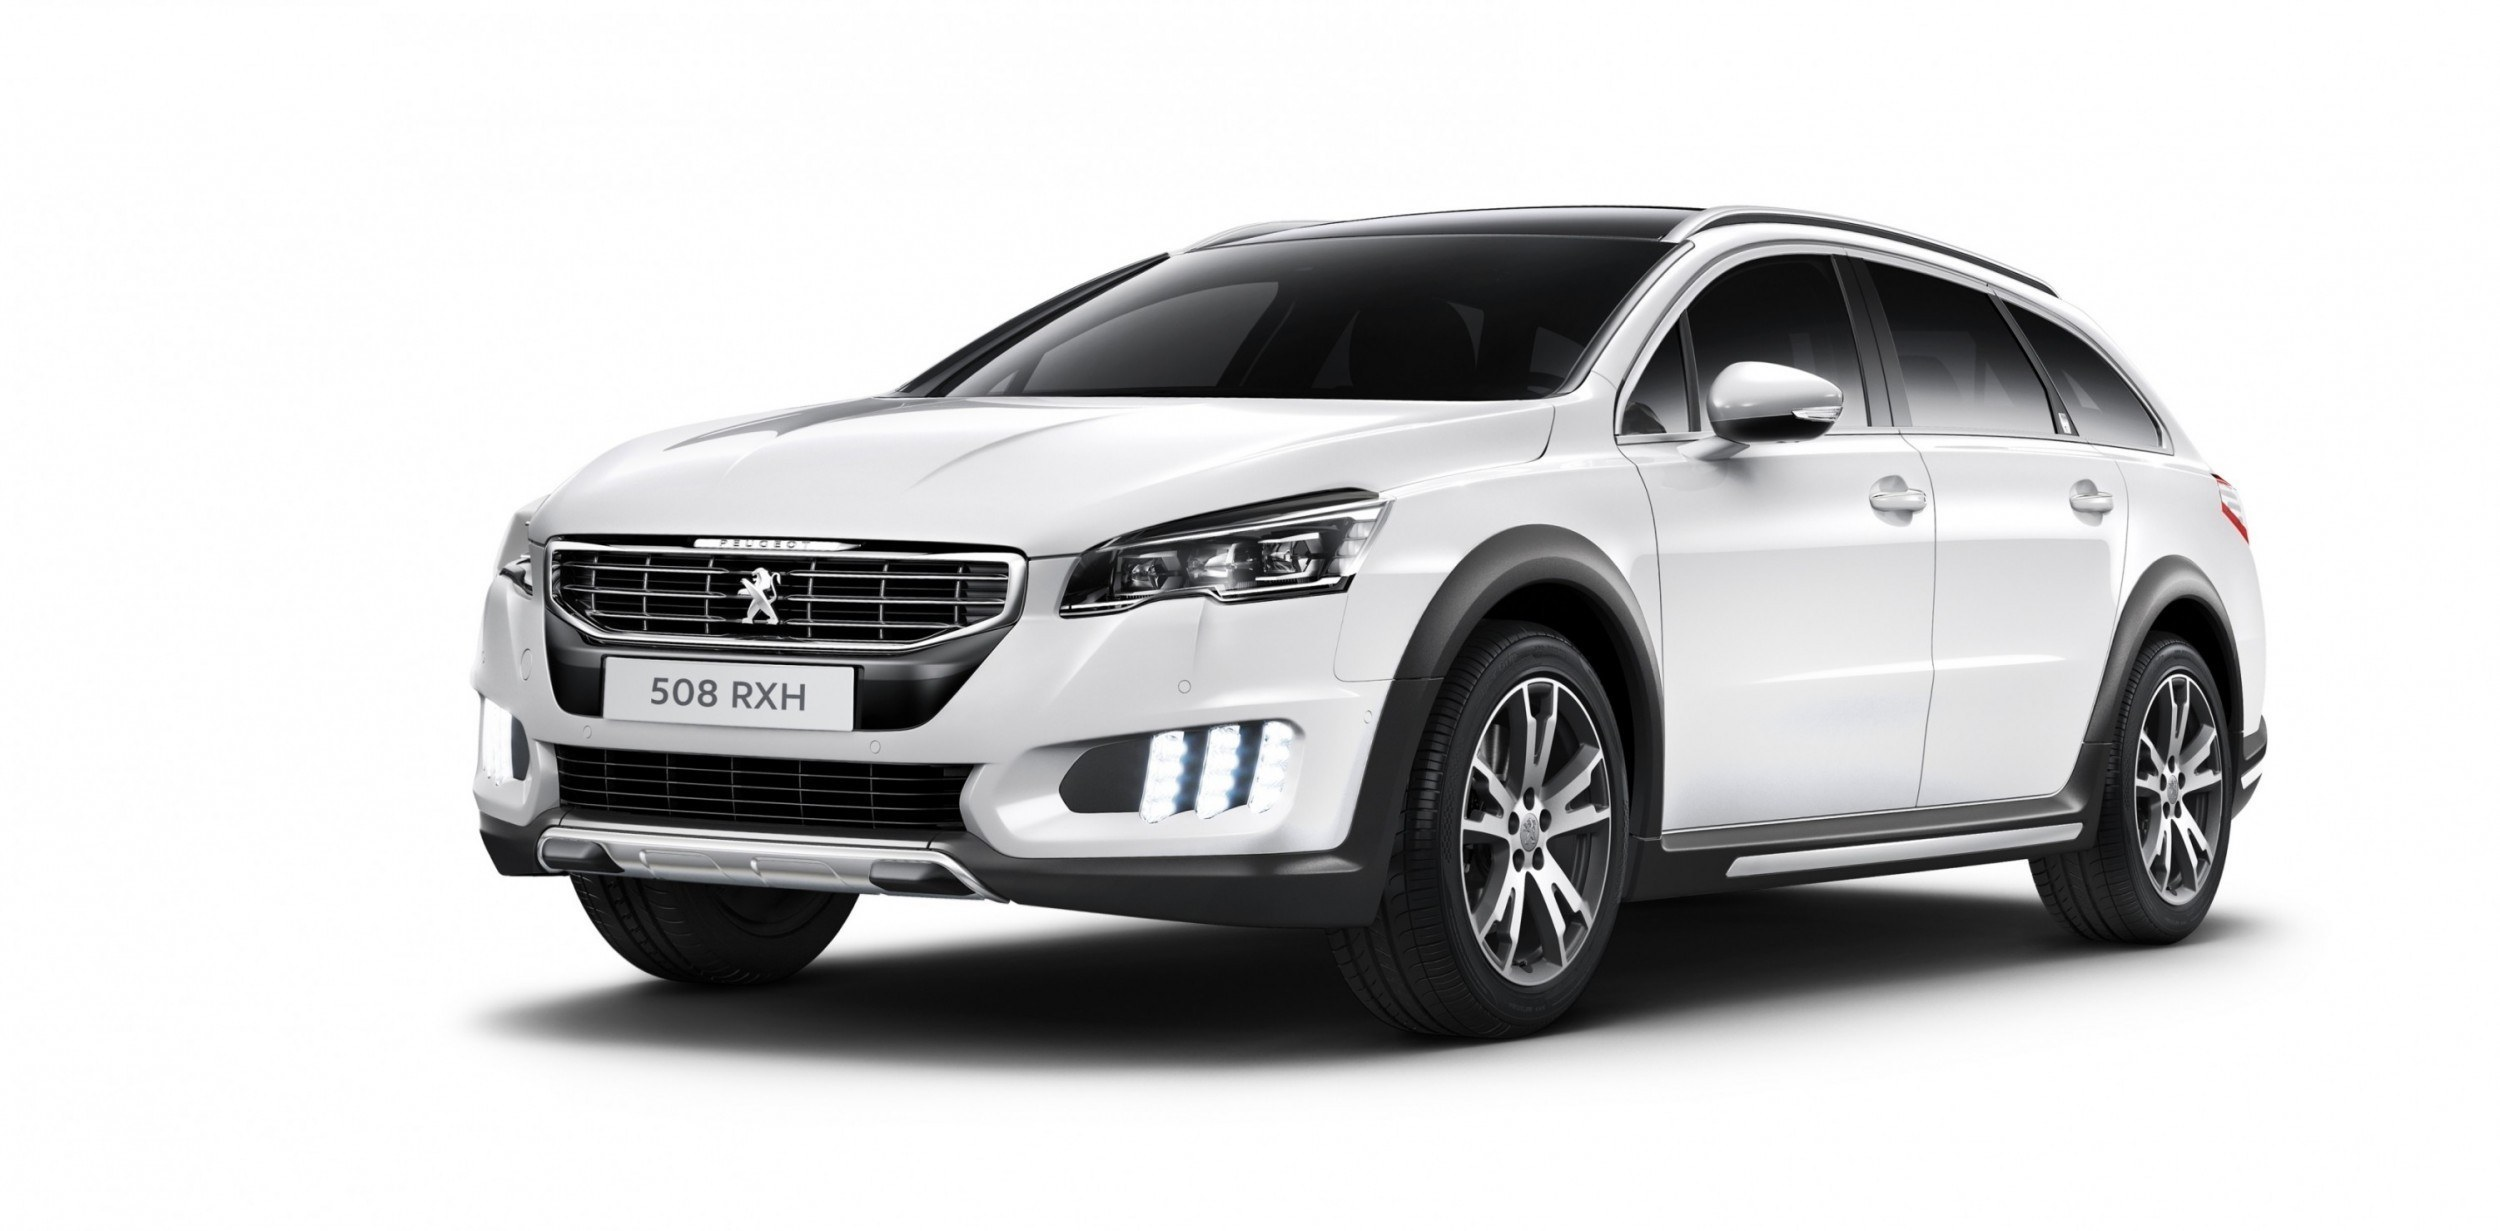 2015 peugeot 508 facelifted with new led drls box design beams and tweaked cabin tech. Black Bedroom Furniture Sets. Home Design Ideas